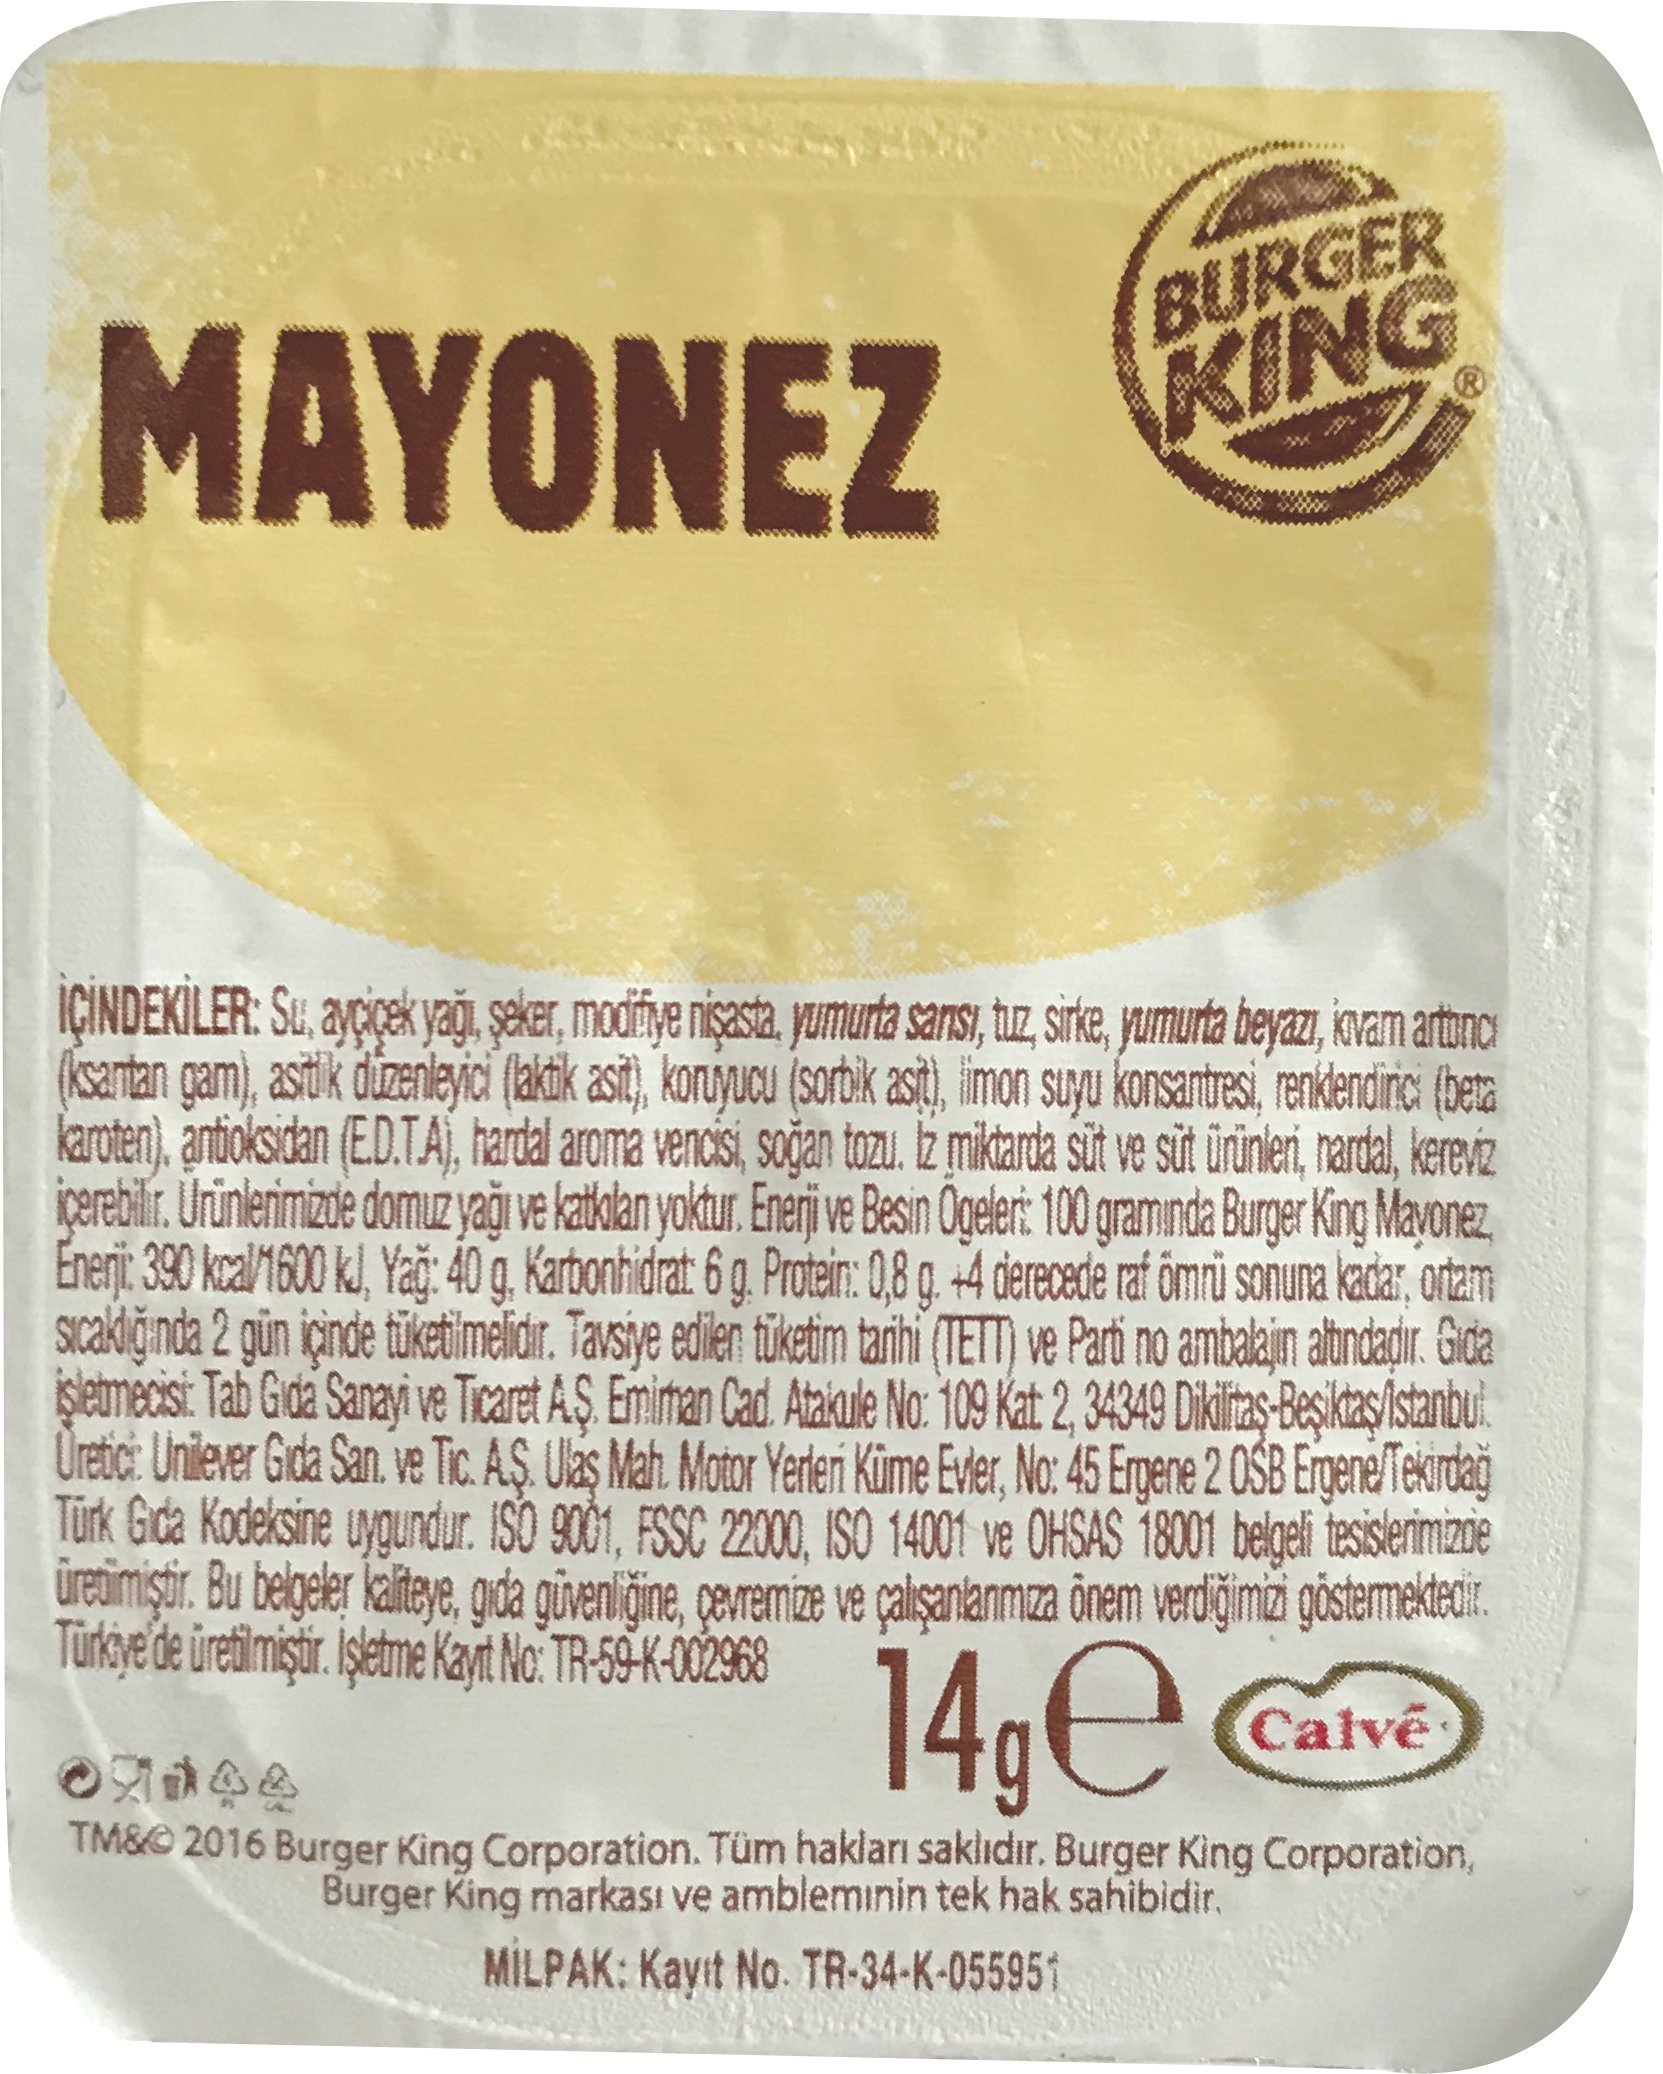 Burger King Mini Mayonez 14 G 120 Adet Unilever